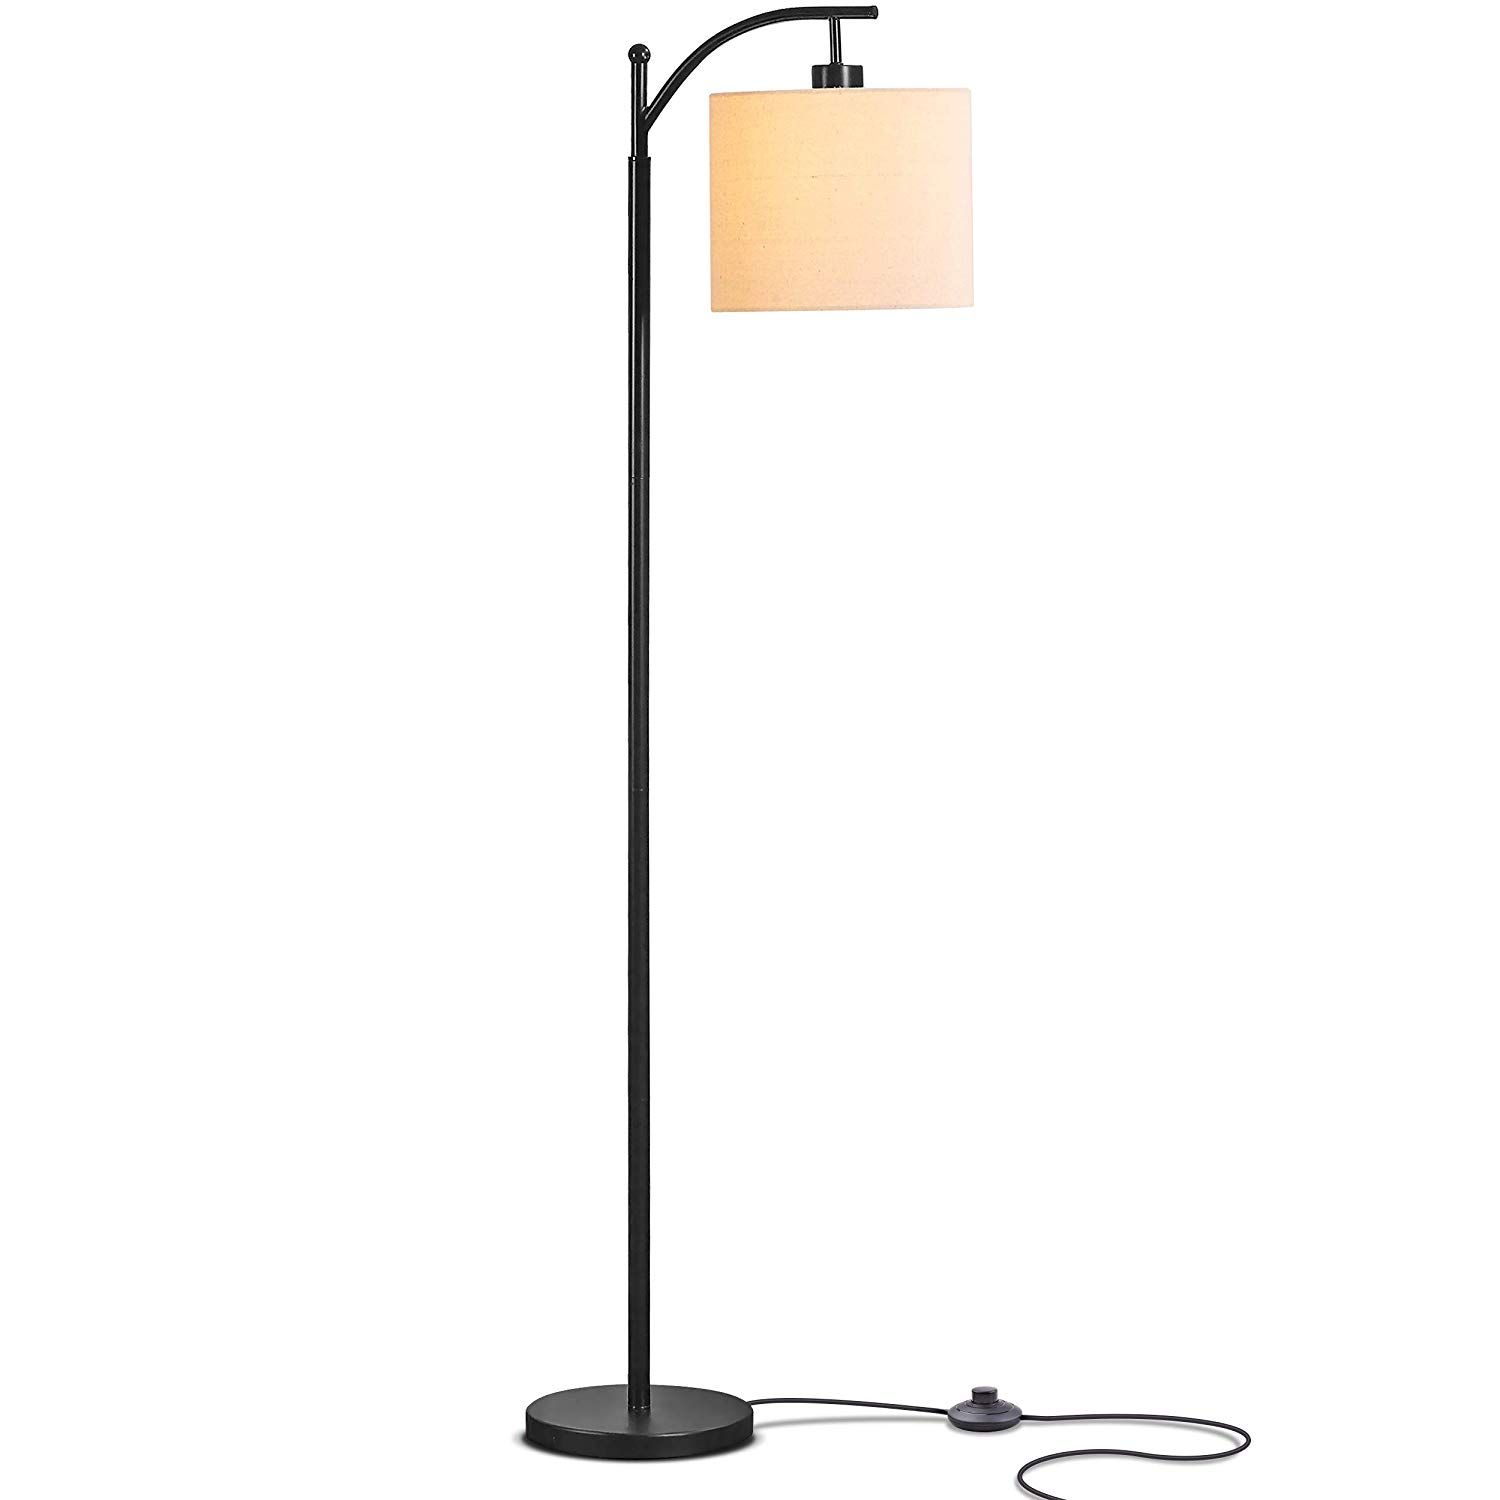 Brightech Montage Works With Alexa Led Floor Lamp Standing